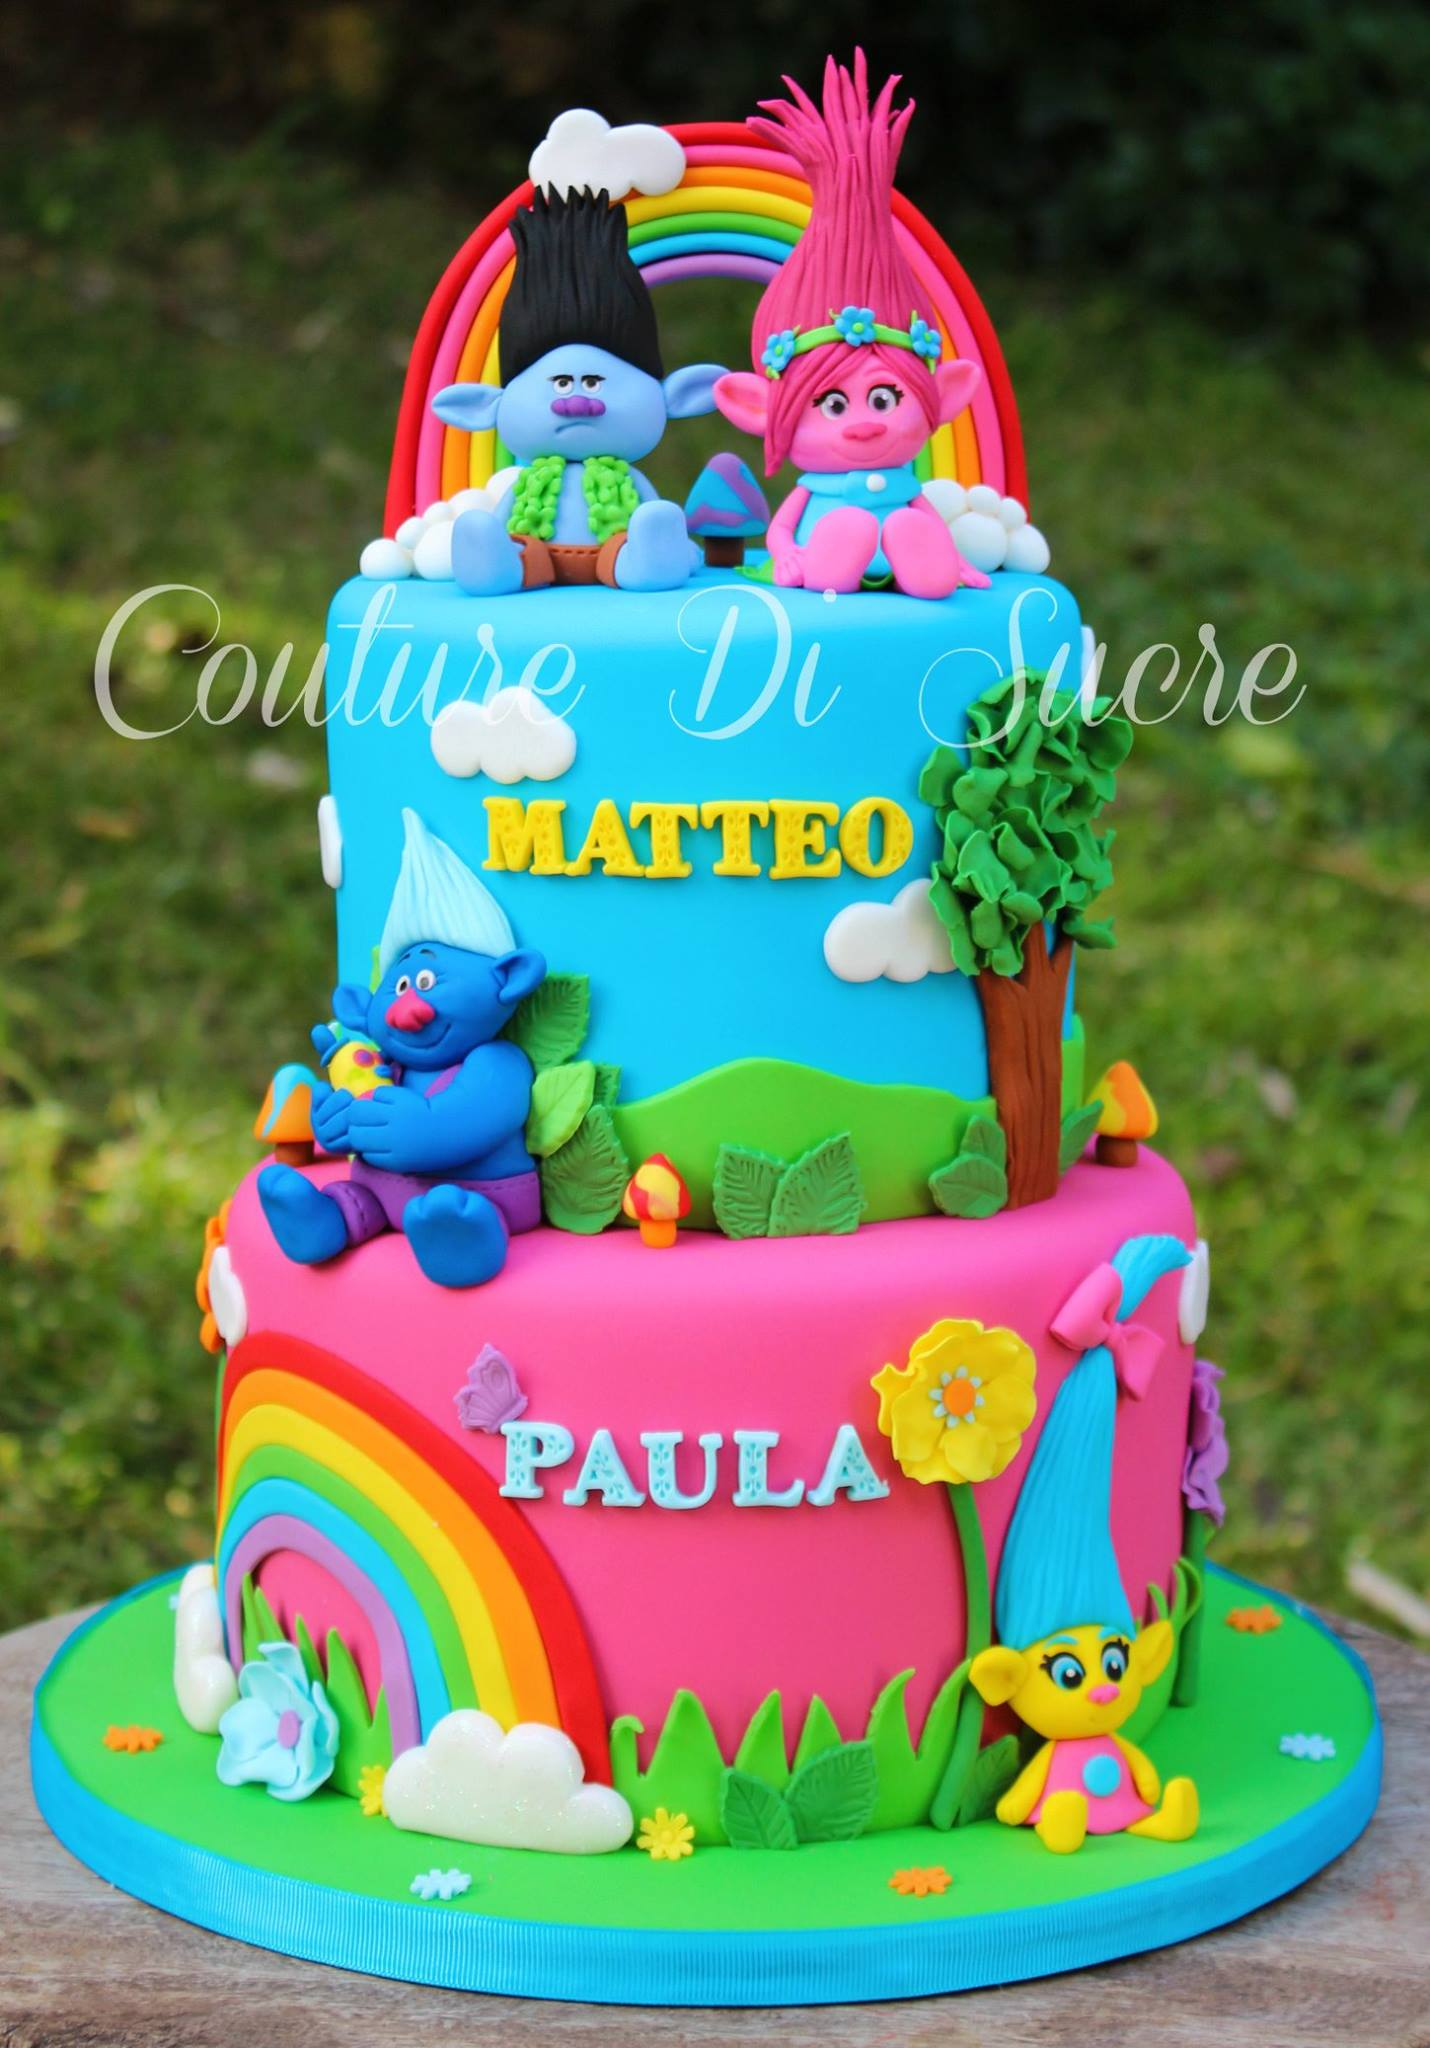 Here Are Some Great Trolls Cake Ideas To Inspire You They Beautiful Festive And Creative Click On Images For Source